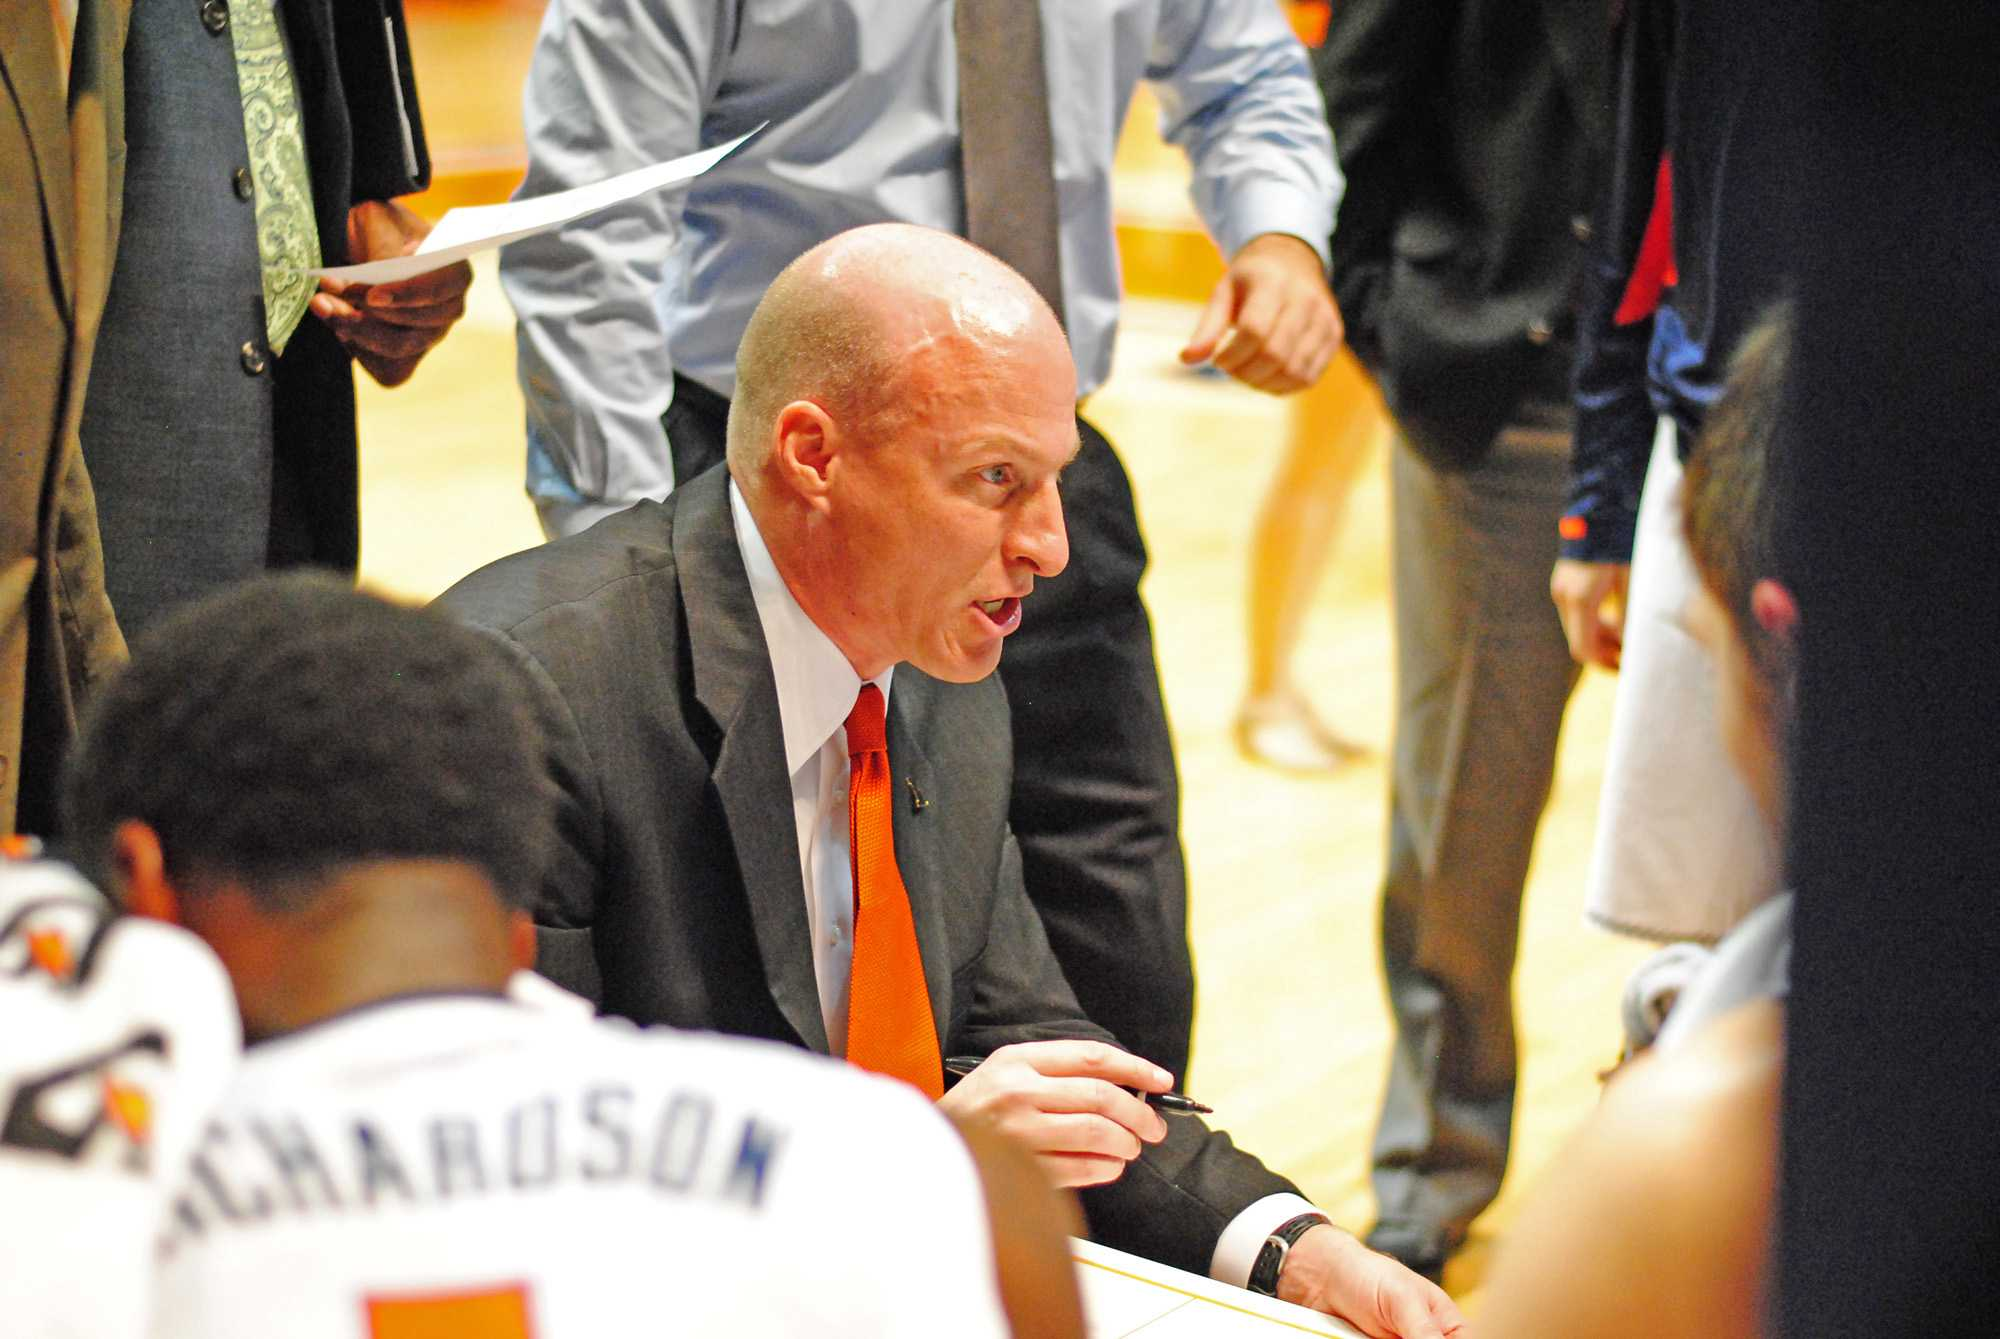 Priten+Vora+The+Daily+Illini%0DIllinois+Head+Coach+John+Groce+gives+directions+to+his+players+during+a+second-half+timeout+during+the+game+against+the+Lewis+Flyers+on+Saturday%2C+Oct.+27%2C+2012+at+Assembly+Hall.+The+Illini+won+79-47.